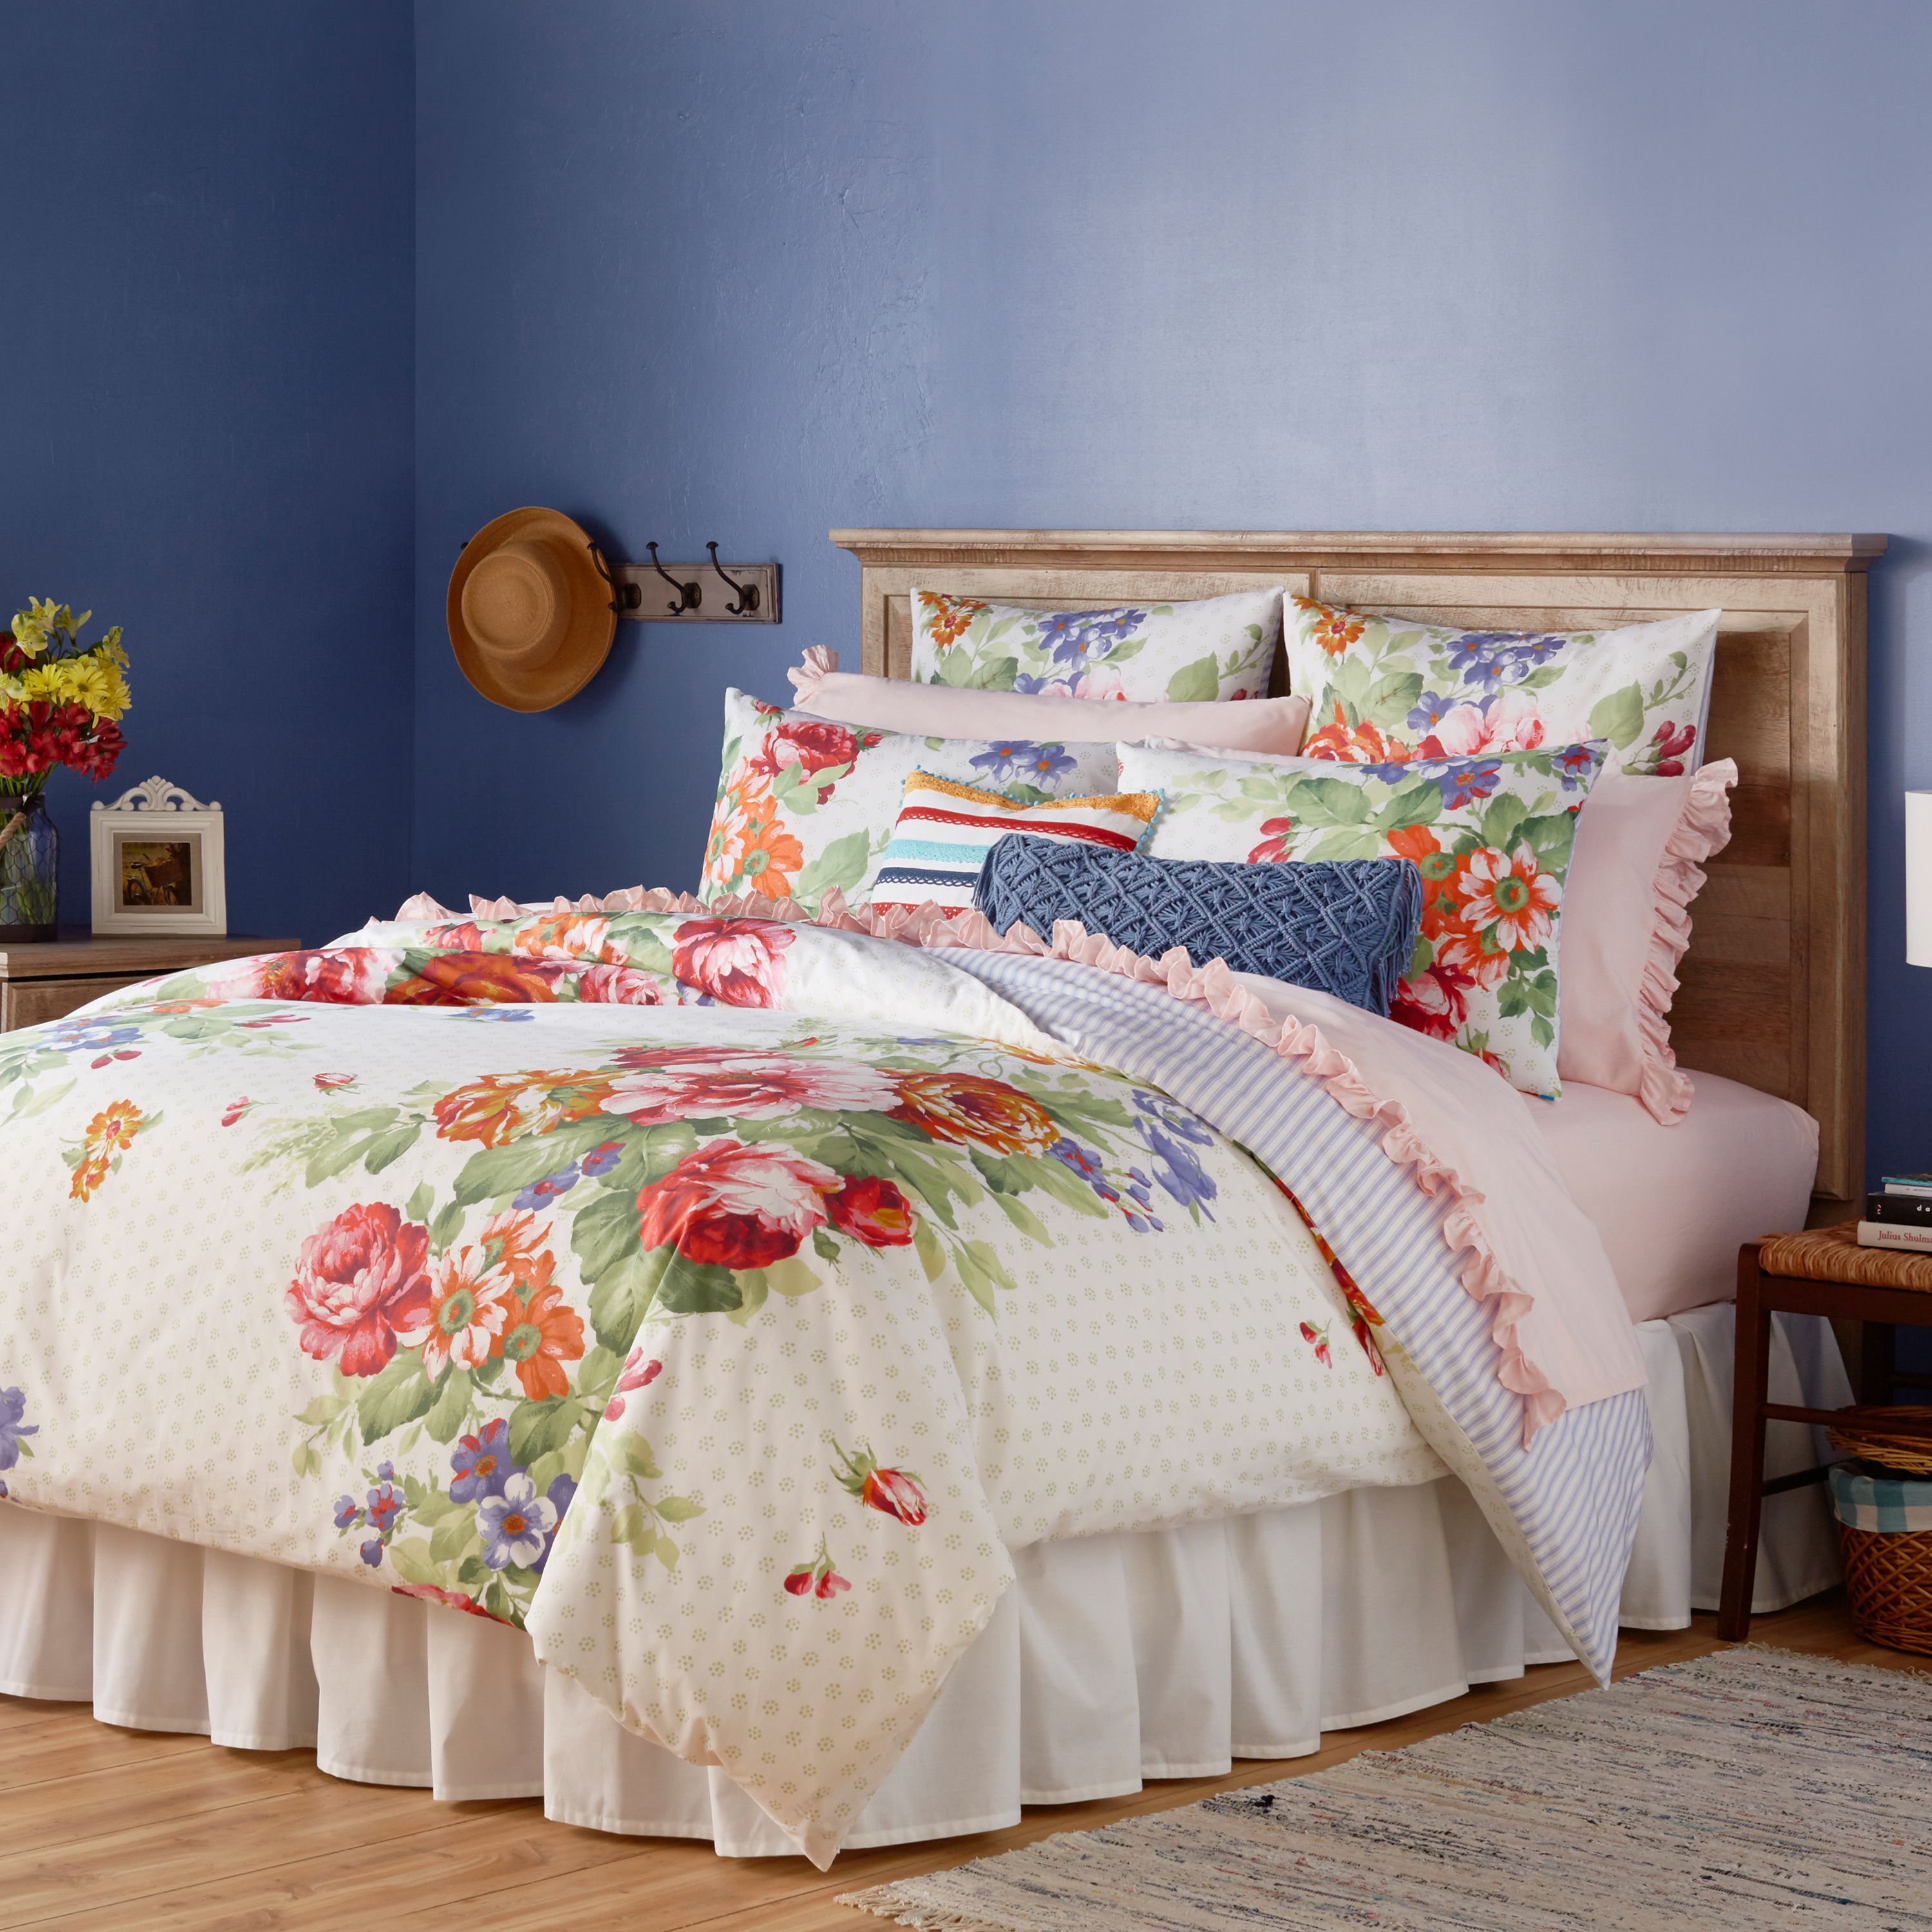 The Pioneer Woman Beautiful Bouquet Duvet Cover, White